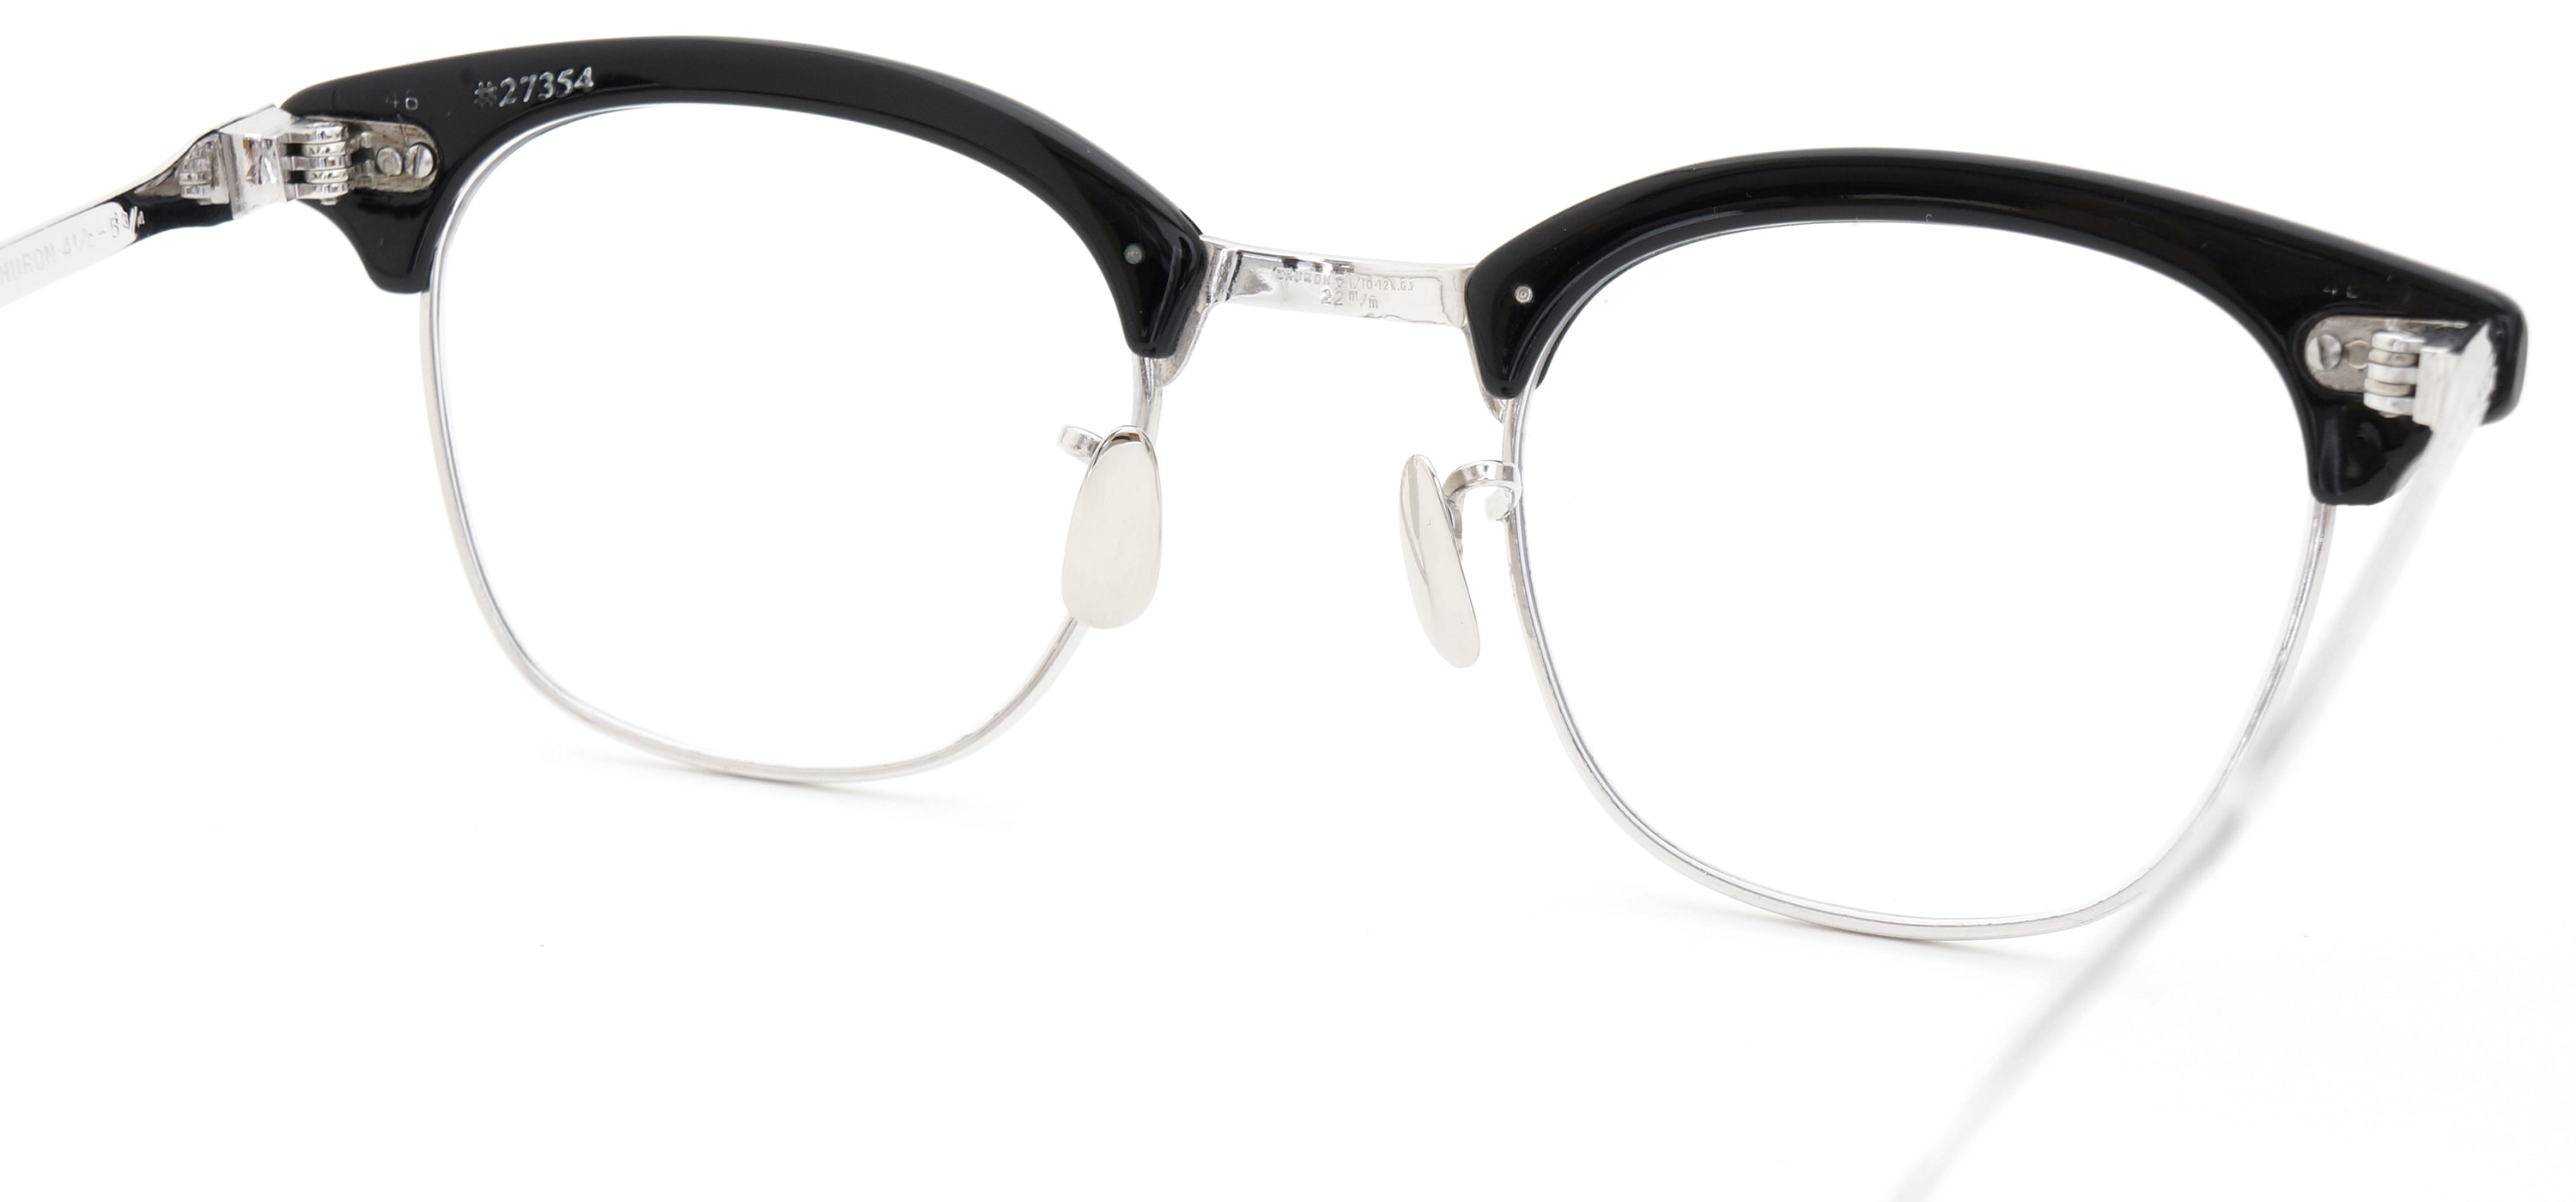 The Spectacle メガネ 1950s-1960s SHURON RONSIR GF-Temple Black WG 1/10 12KGF 46/22 イメージ9